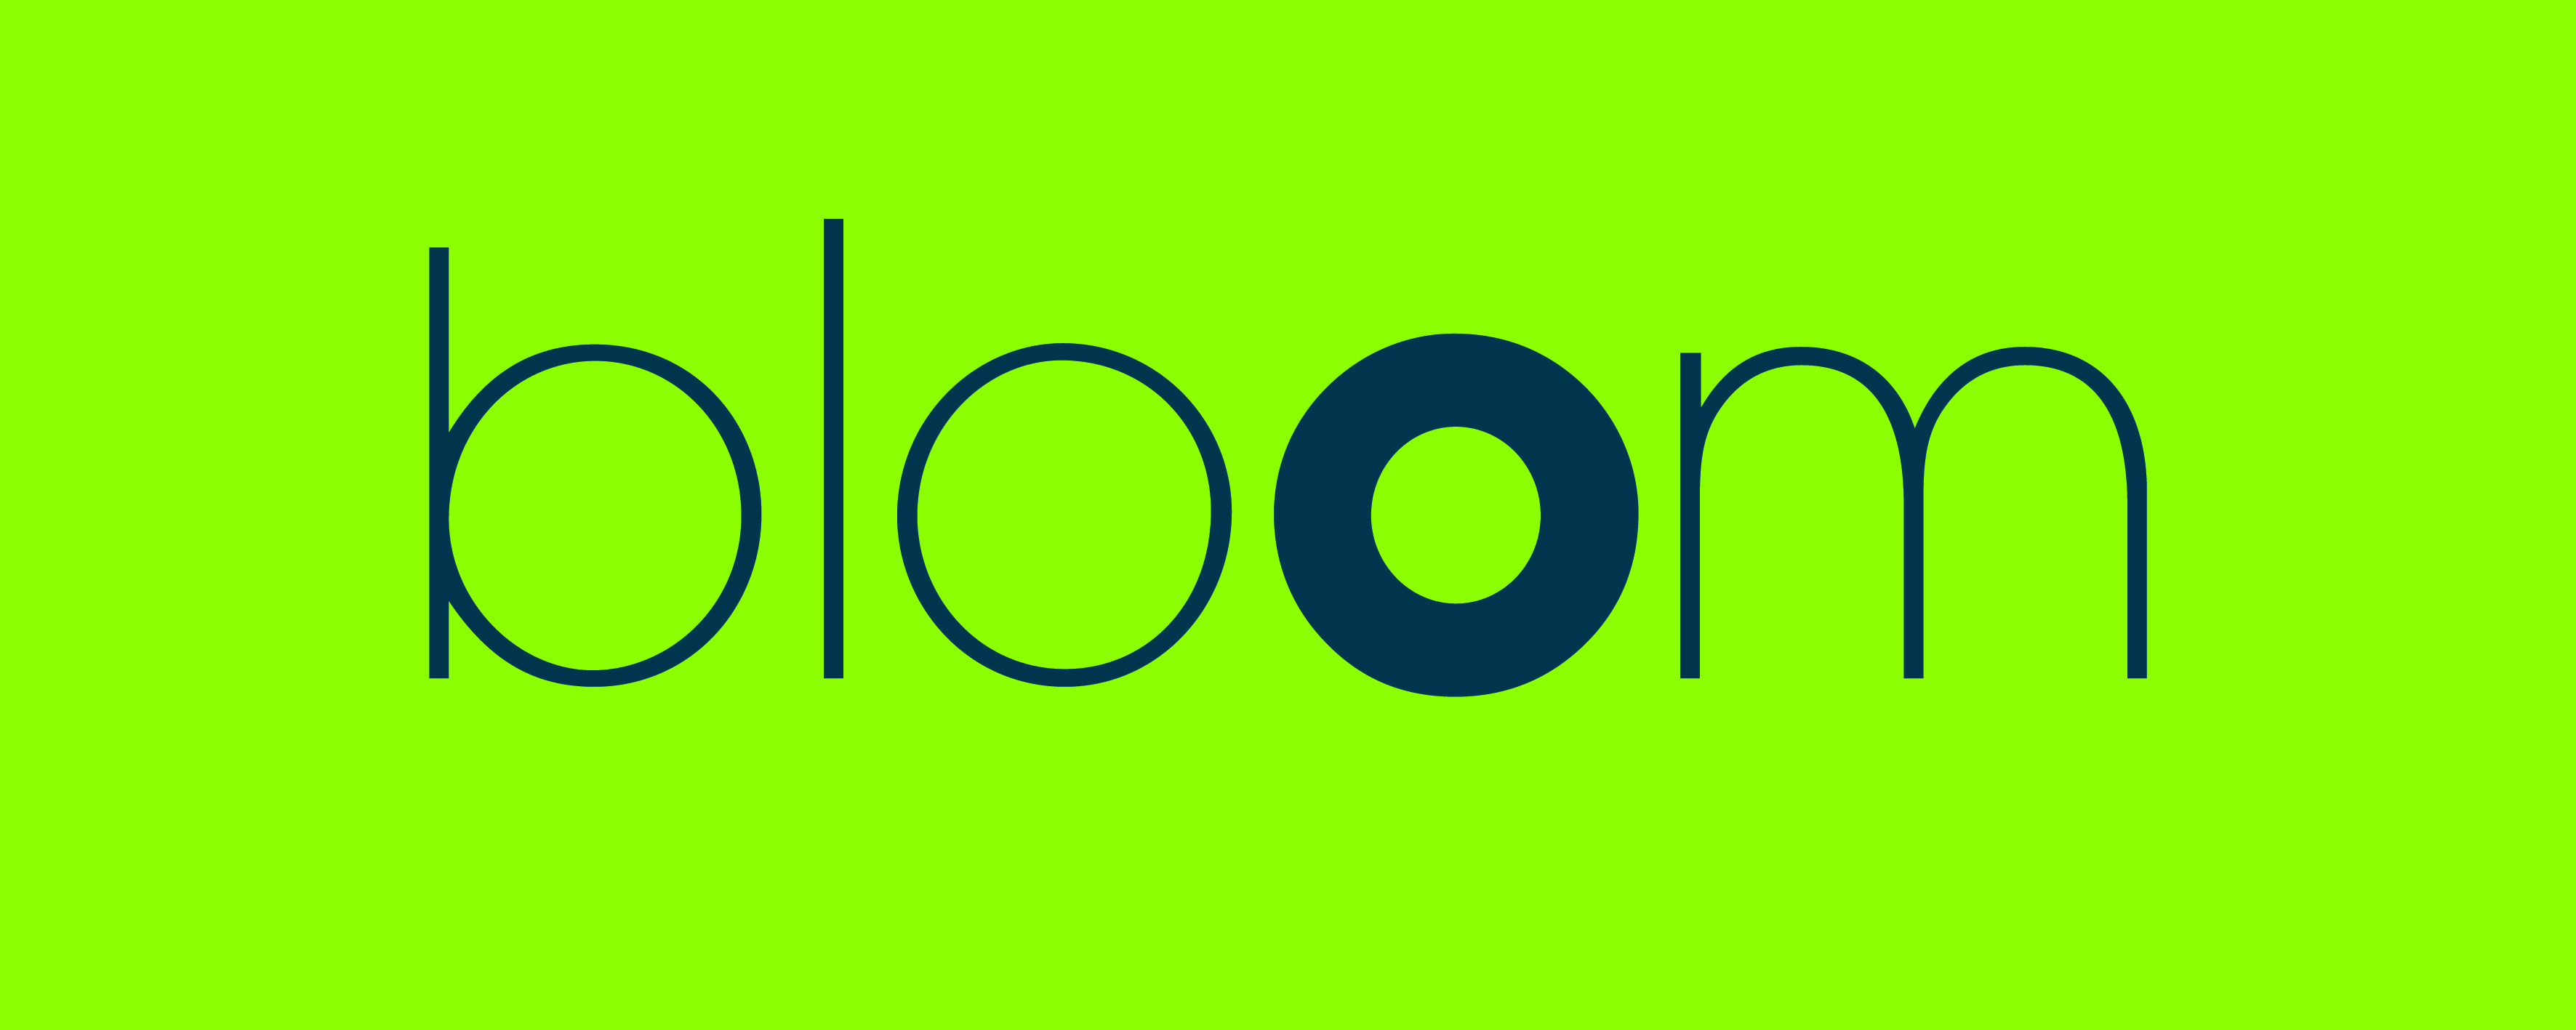 "The BLOOM Competition ""Teach bioeconomy!"" opens on the 25th of March"